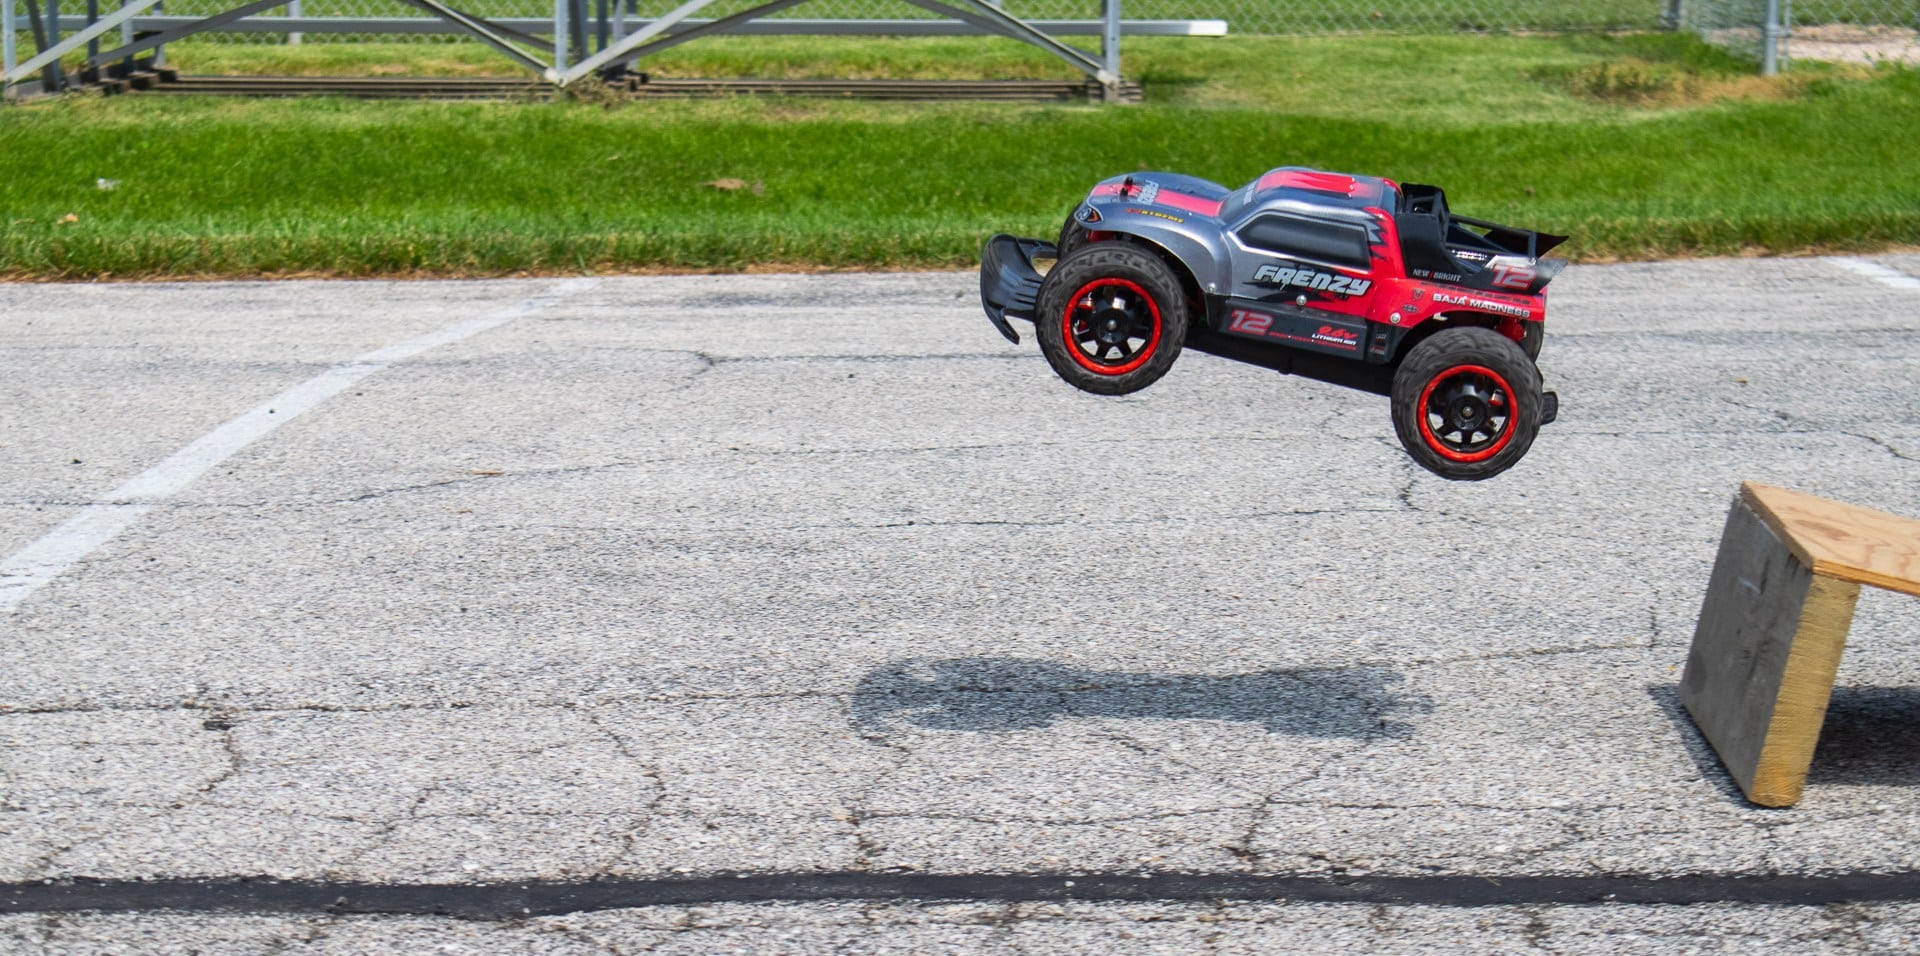 Letting Loose with the New Bright RC Frenzy X-10 [Video]